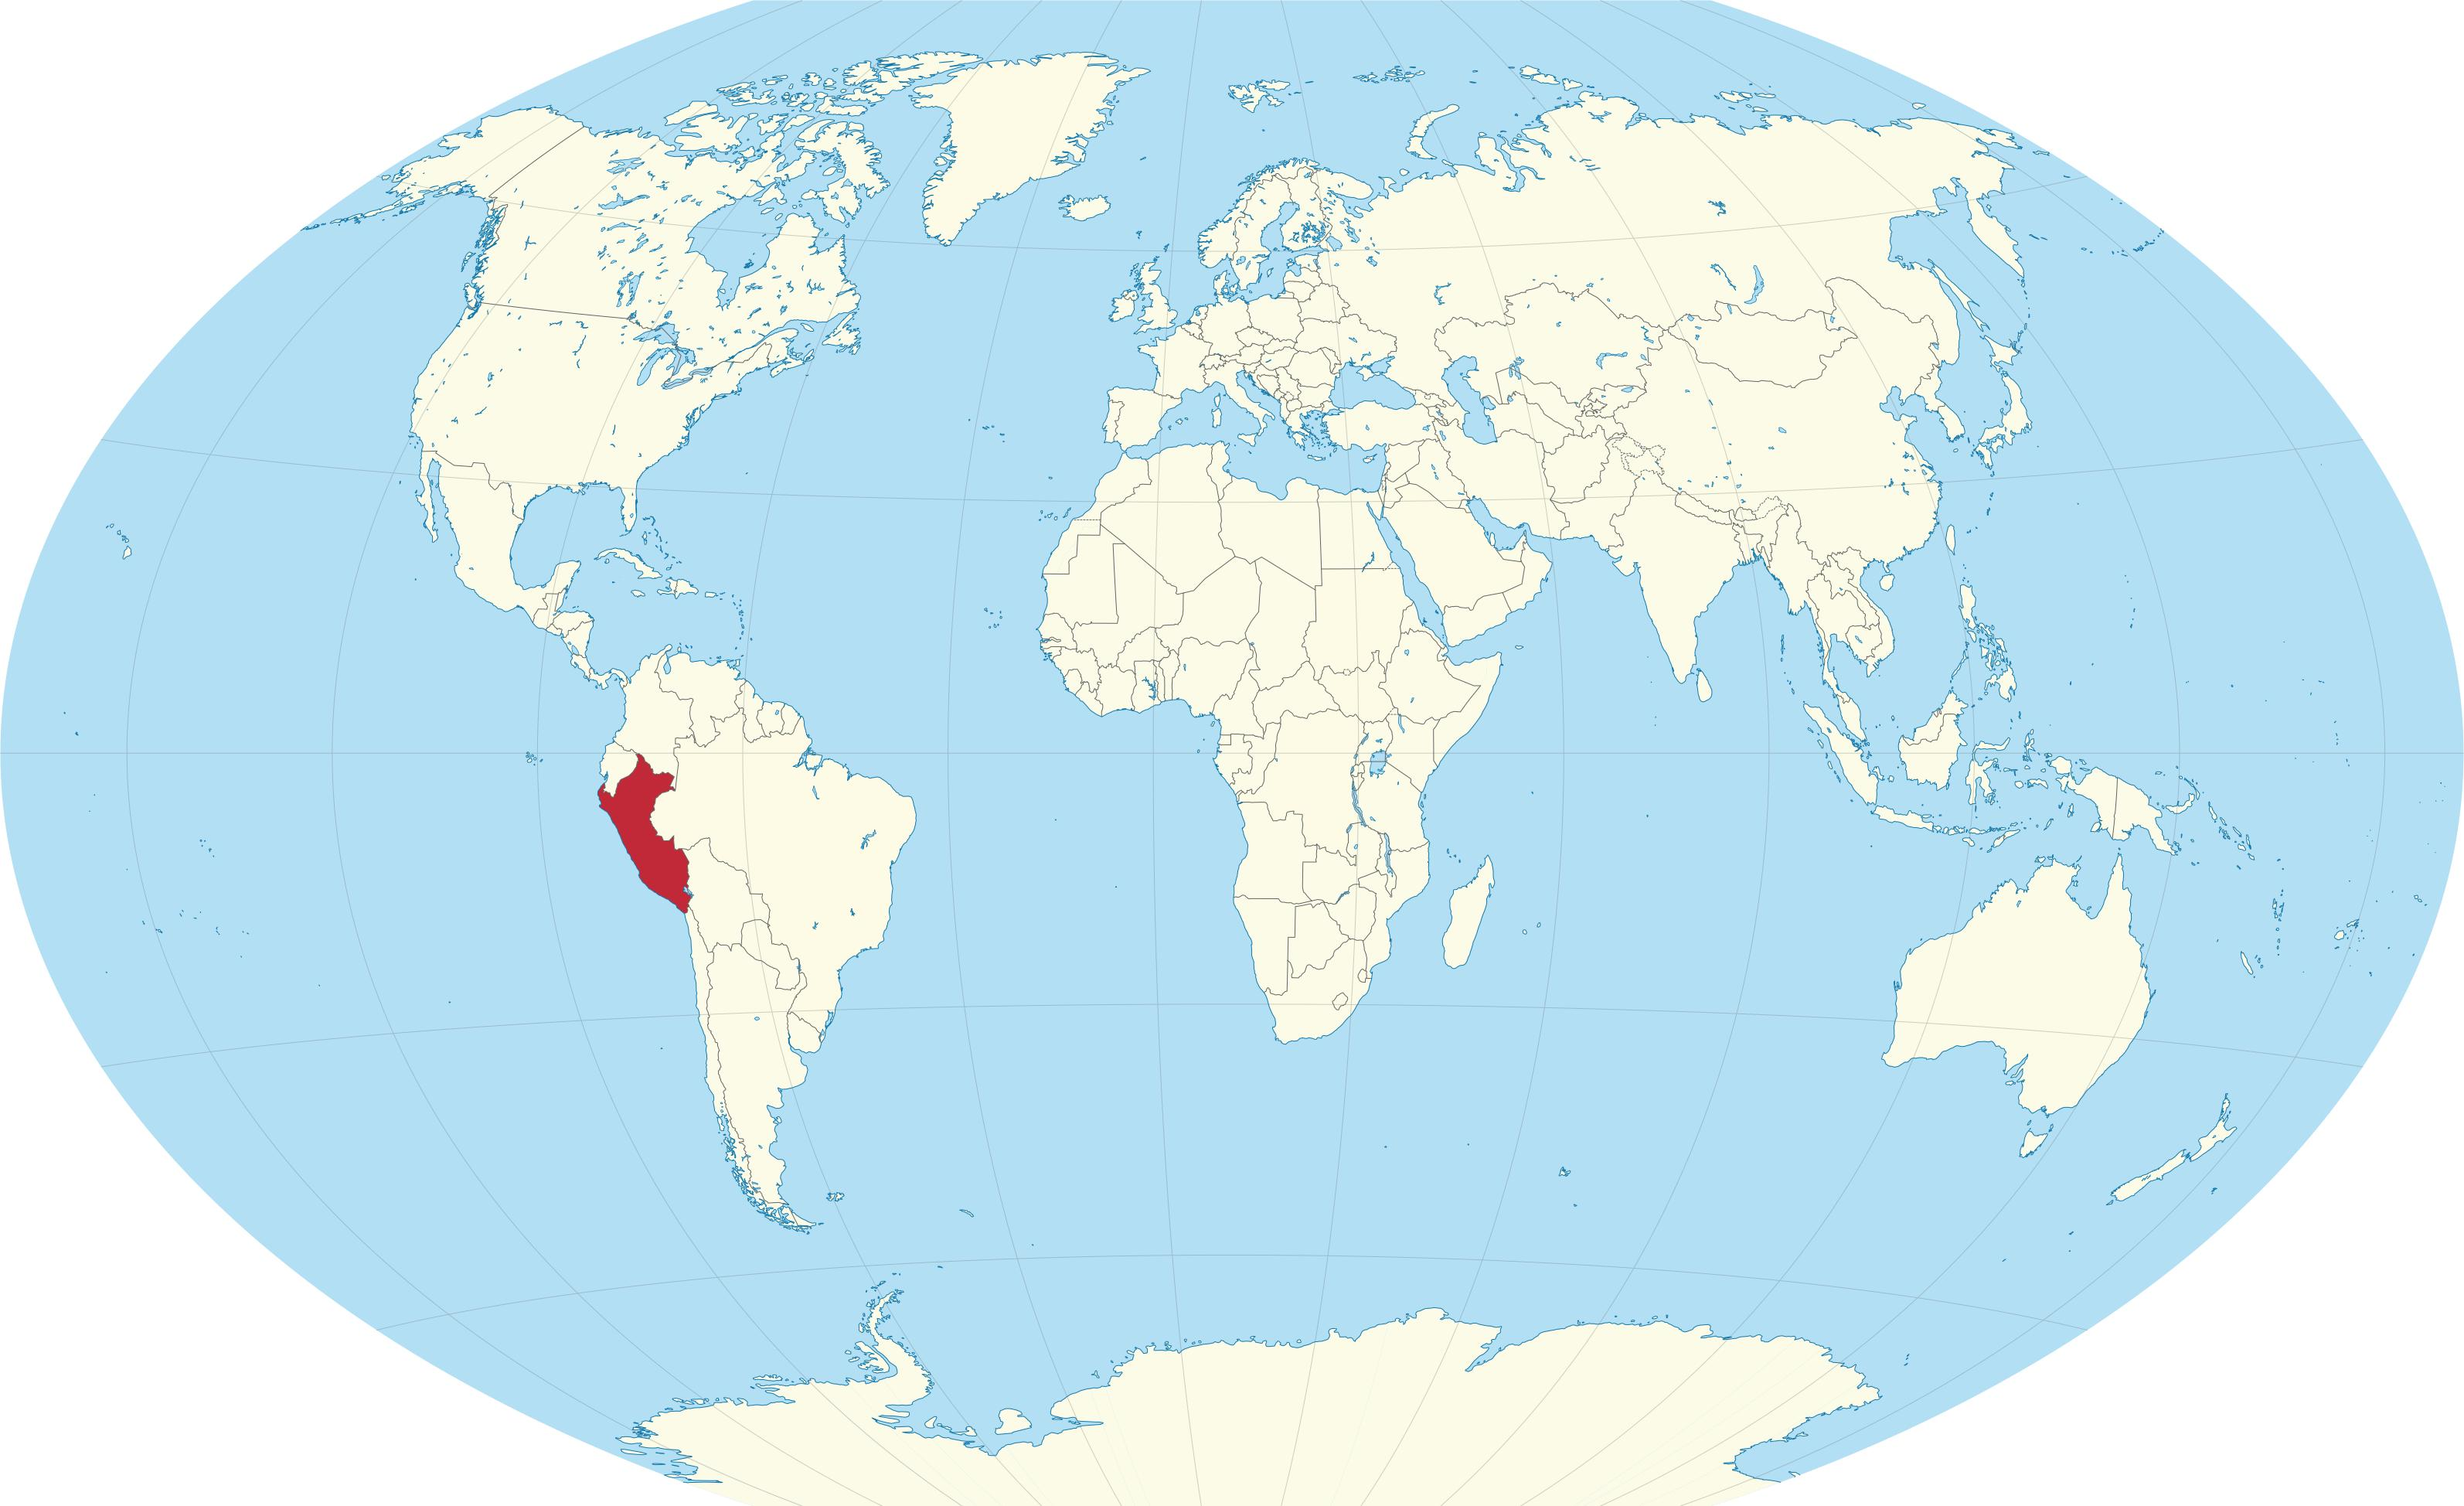 Peru auf der world map - Weltkarte Peru (South America - Südamerika)